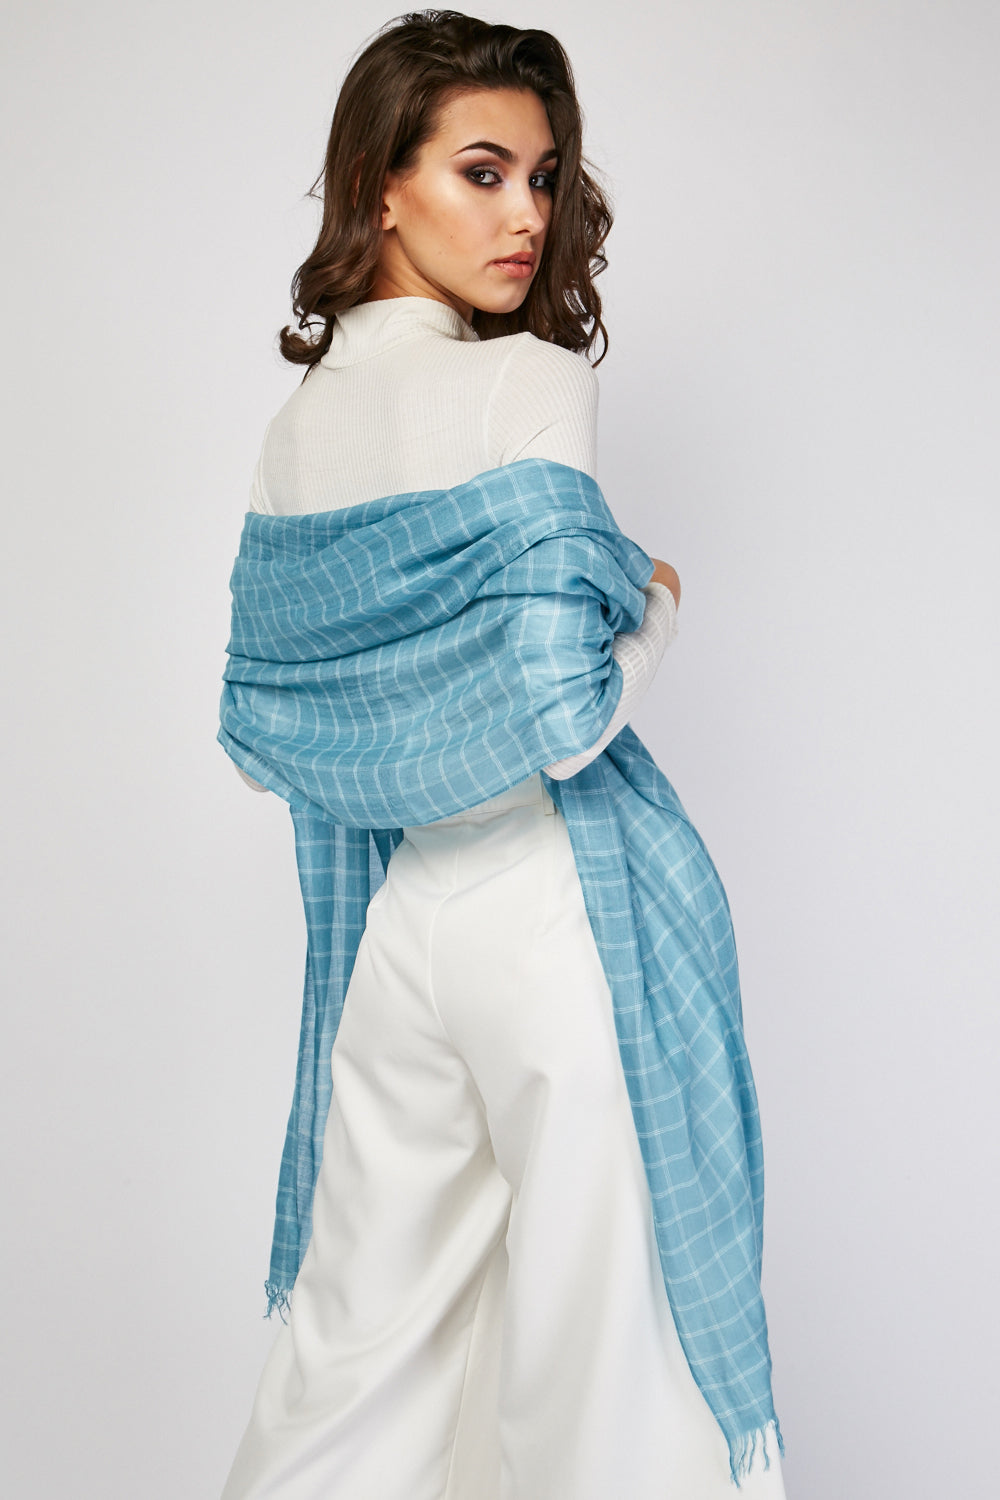 Rosa Raw Edge Light Viscose Scarf-Woven Trends